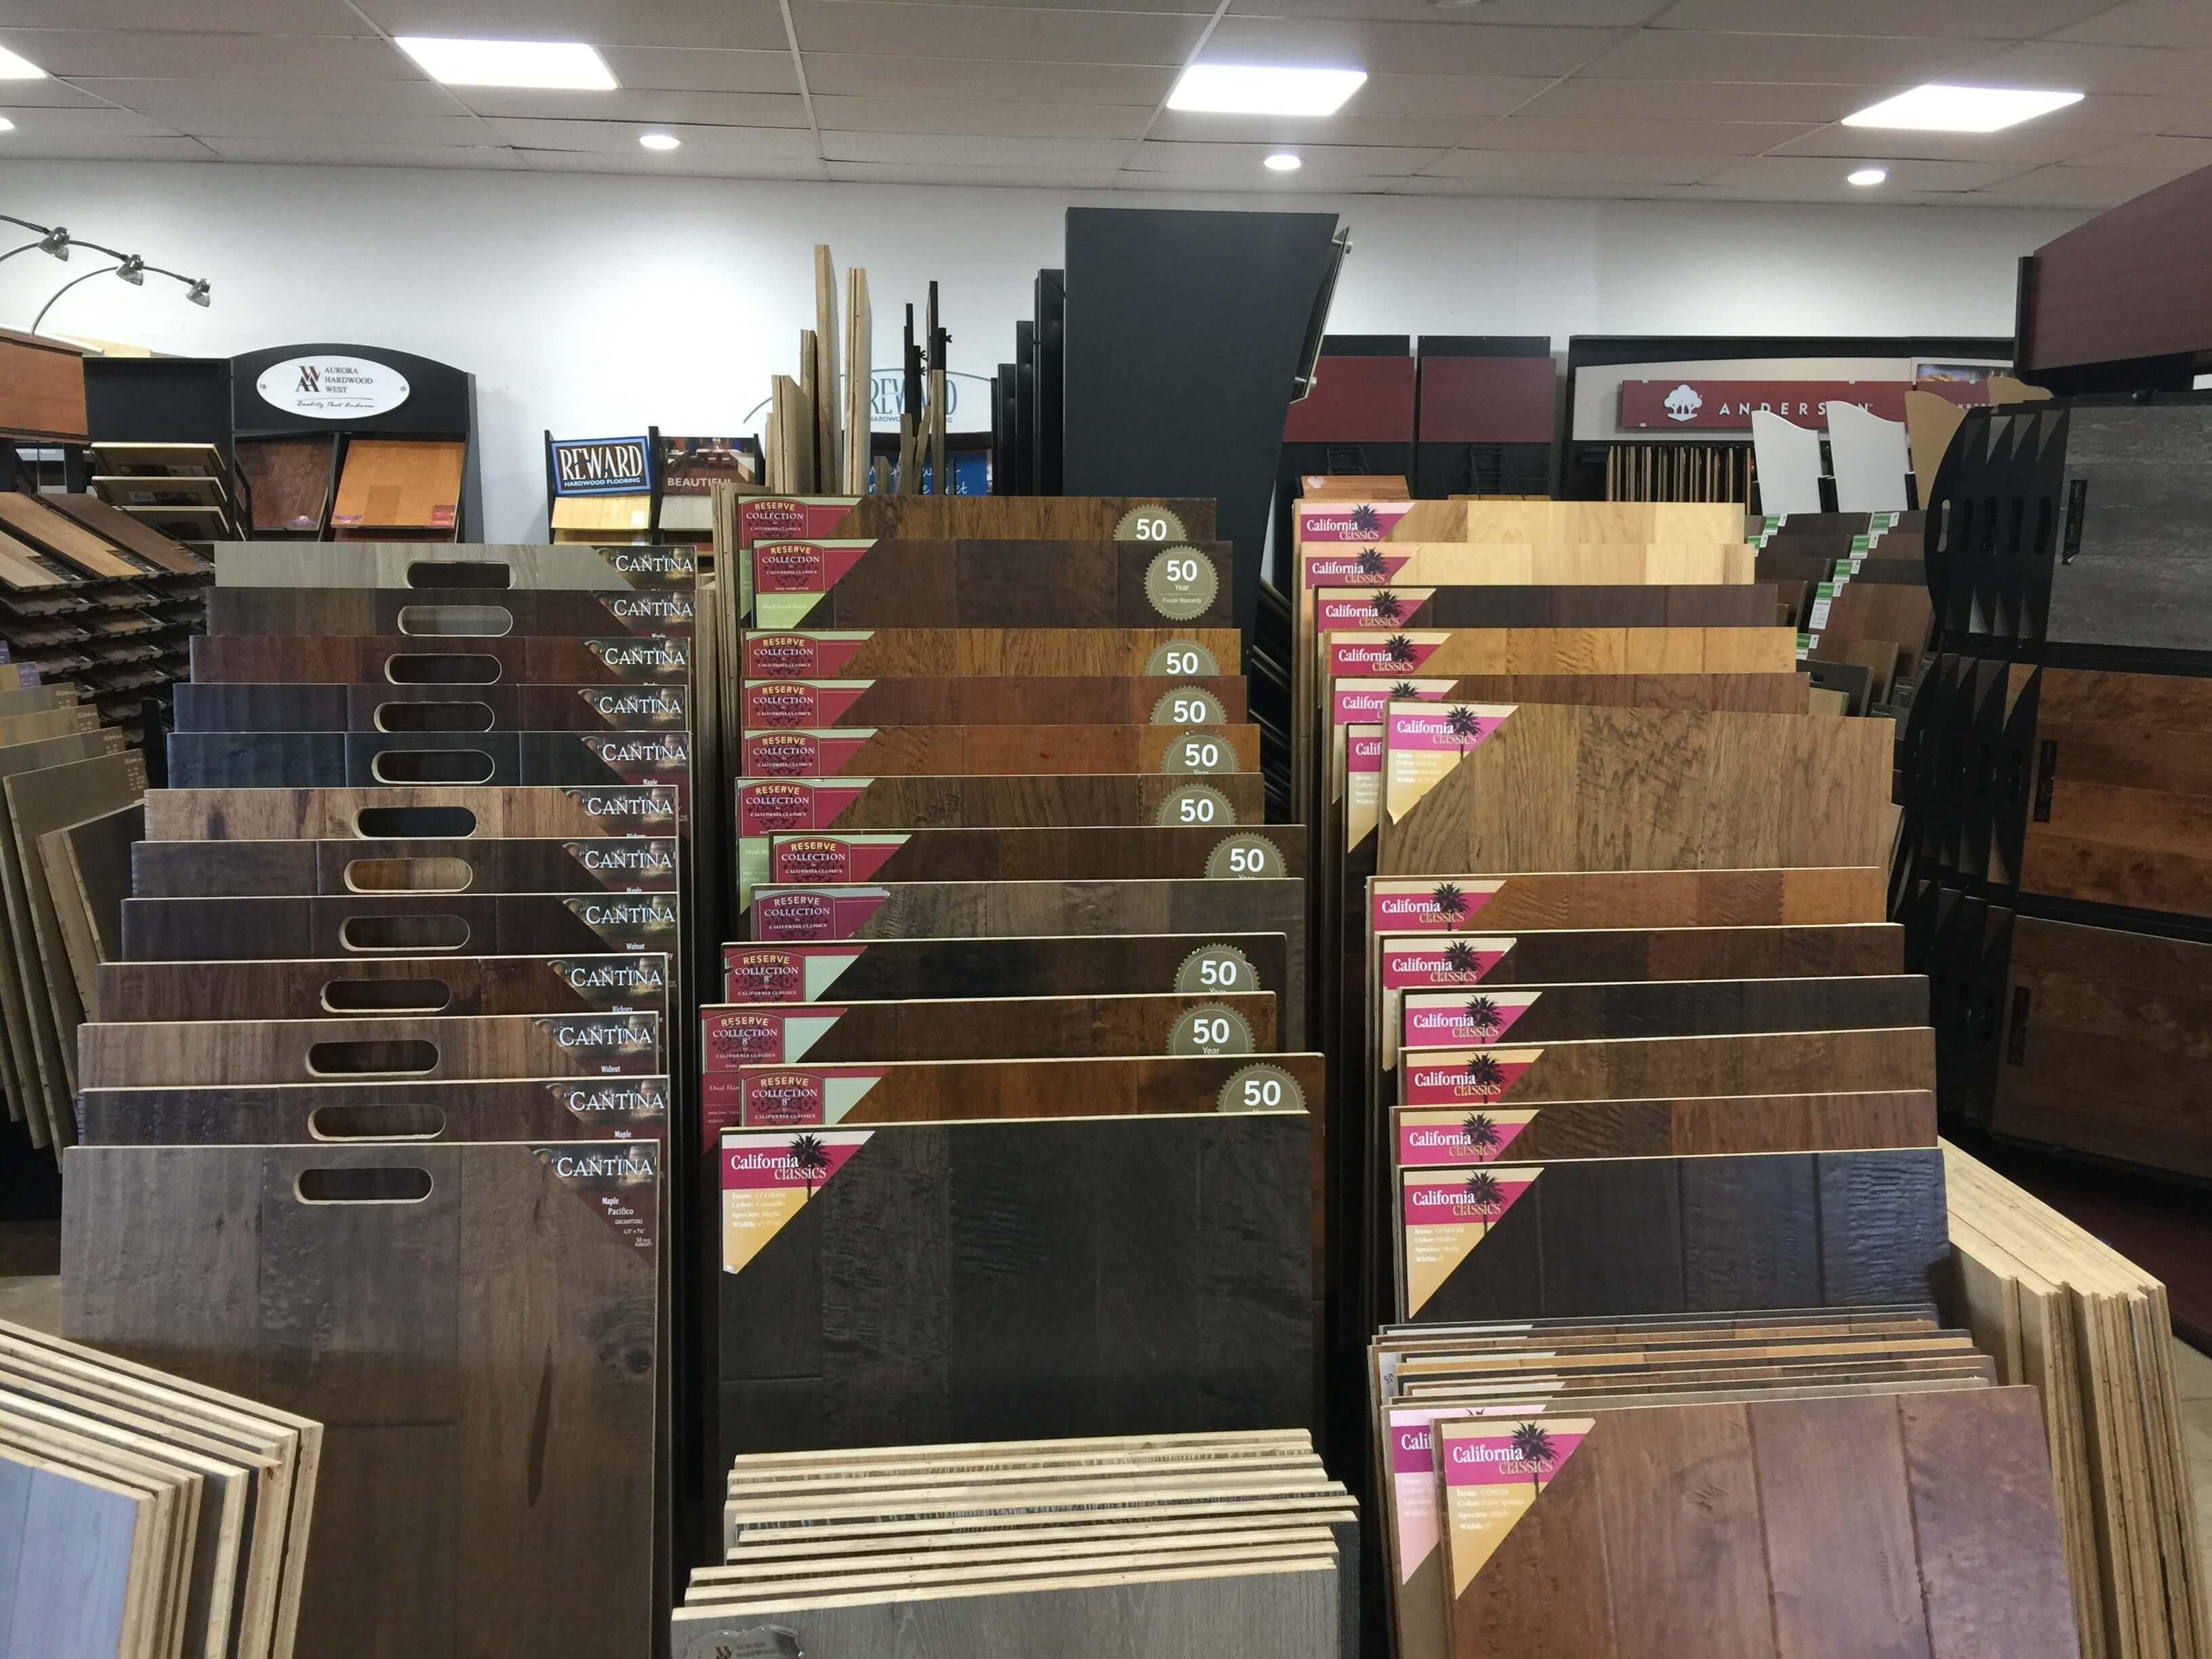 About Avery Hardwood Carpet And Tile Mission Viejo 949 347 0818